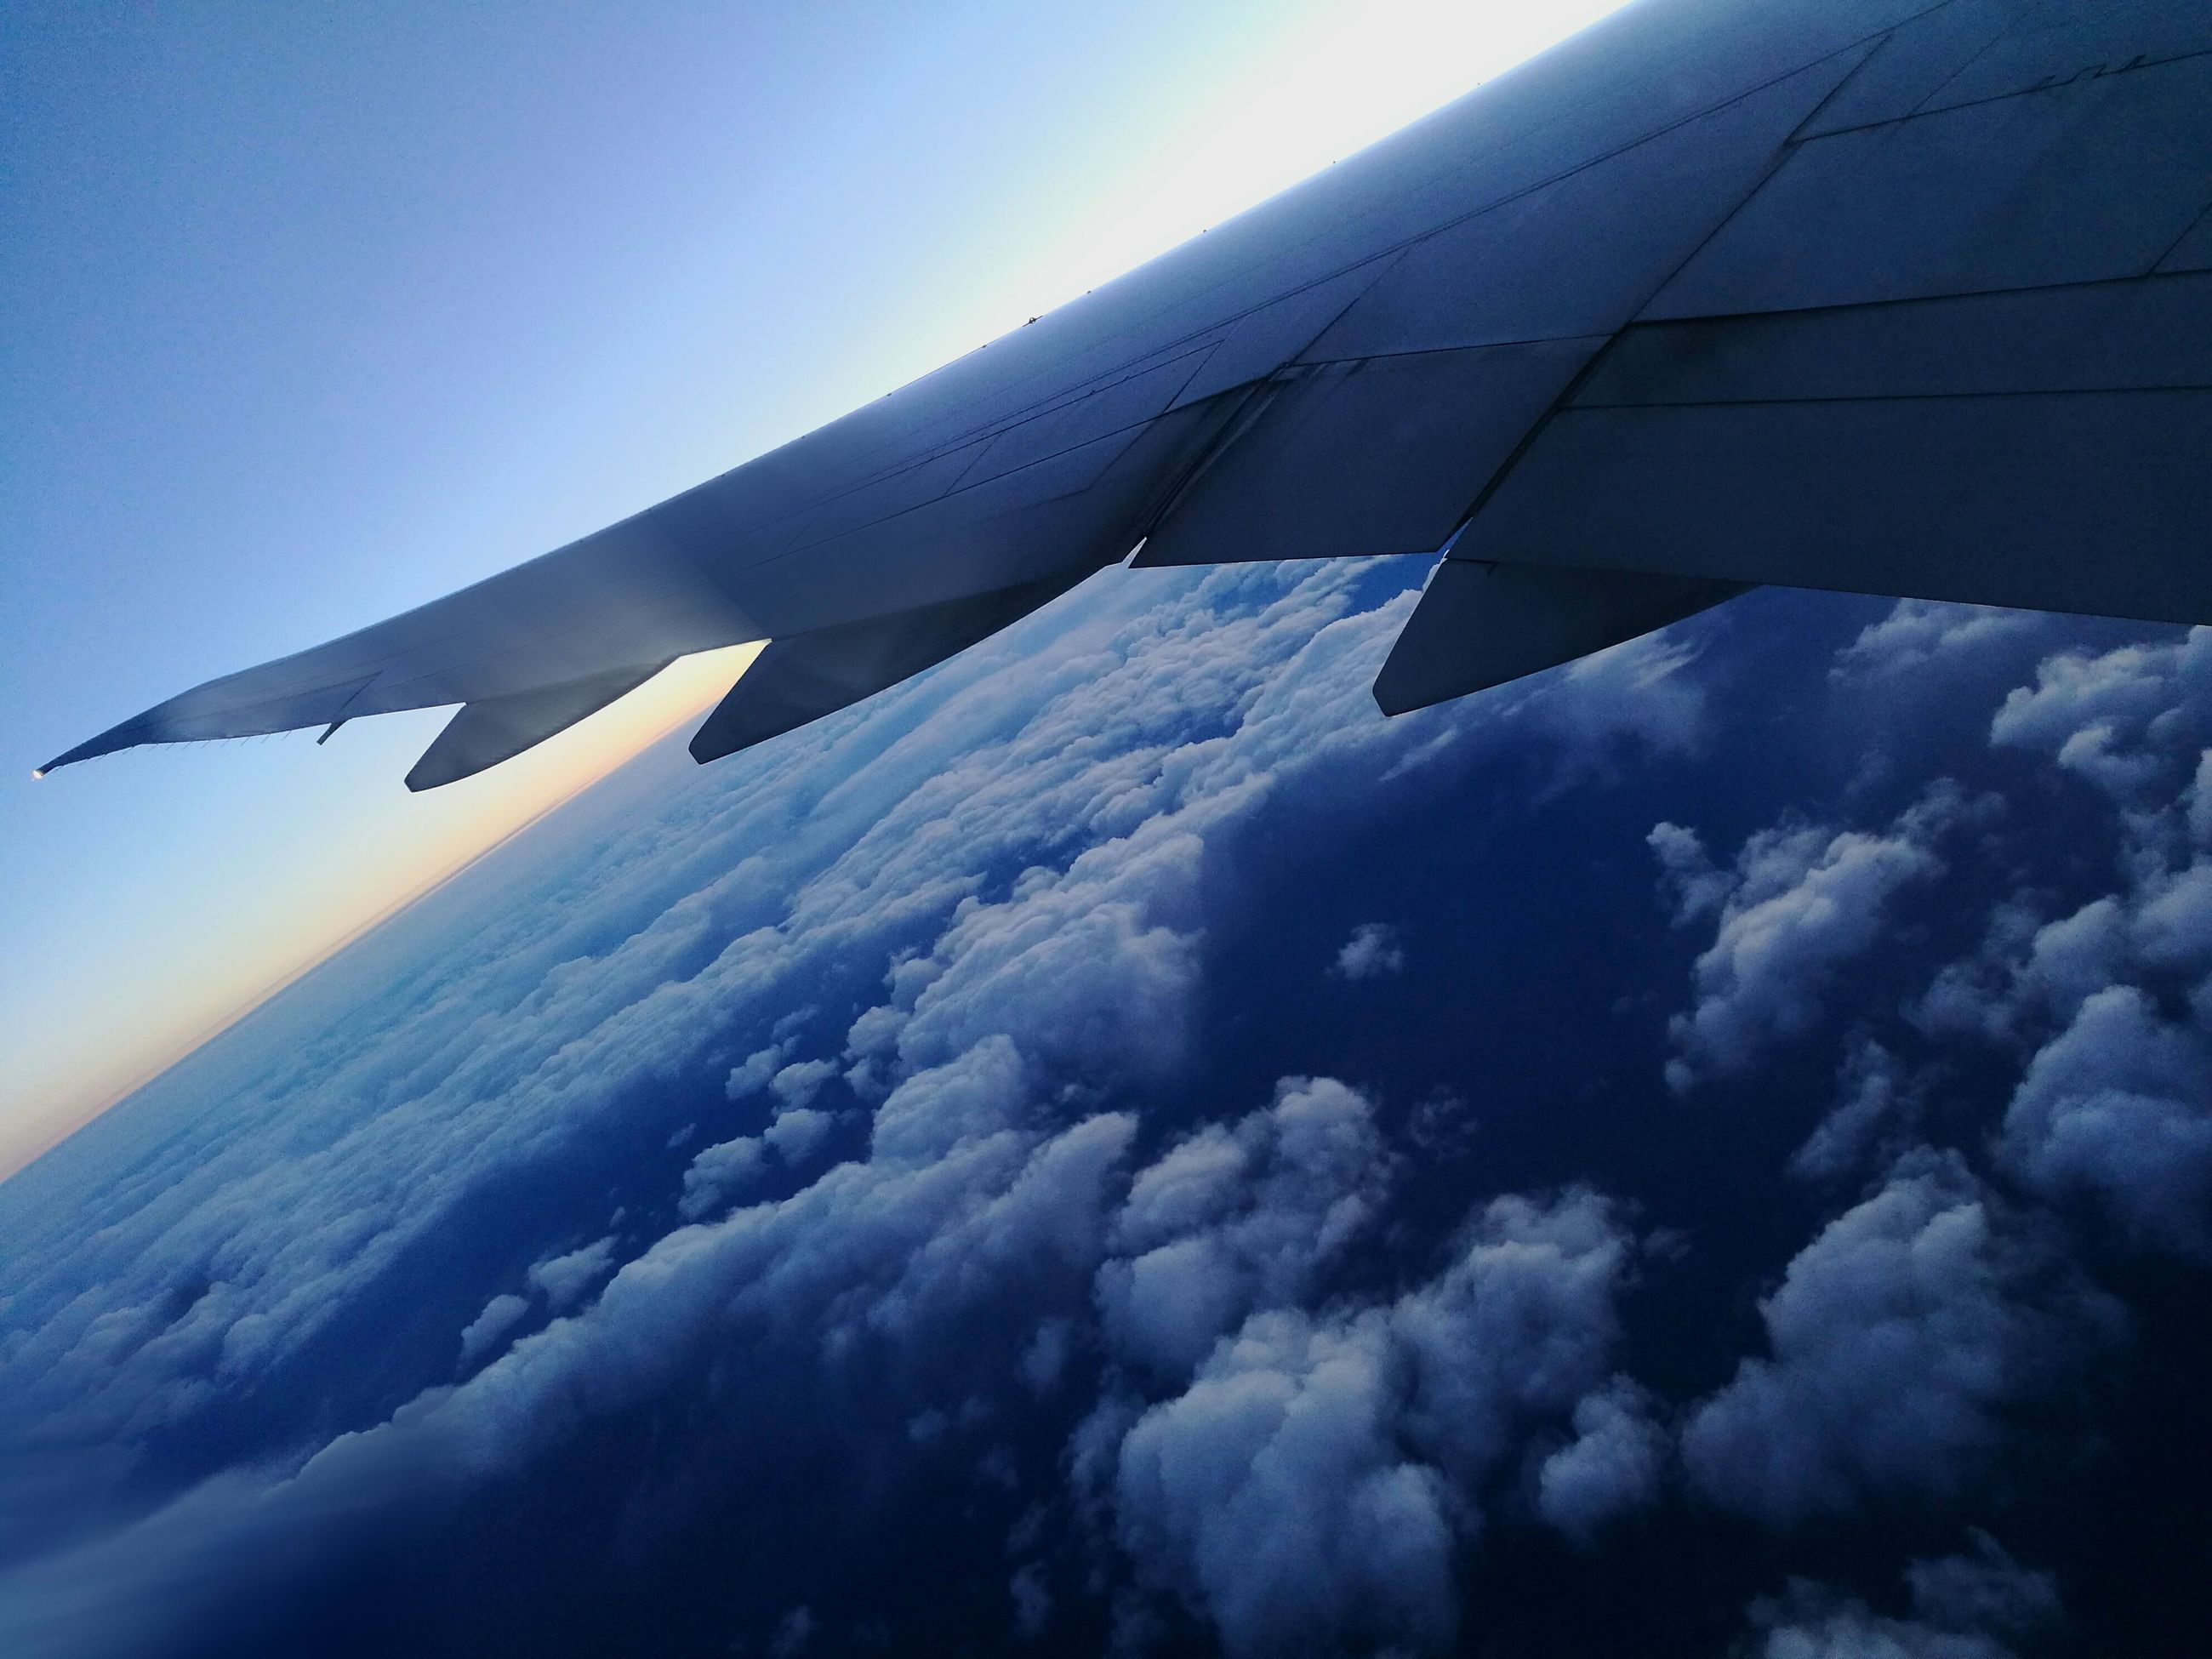 sky, cloud - sky, blue, airplane, transportation, no people, outdoors, nature, day, low angle view, flying, beauty in nature, airplane wing